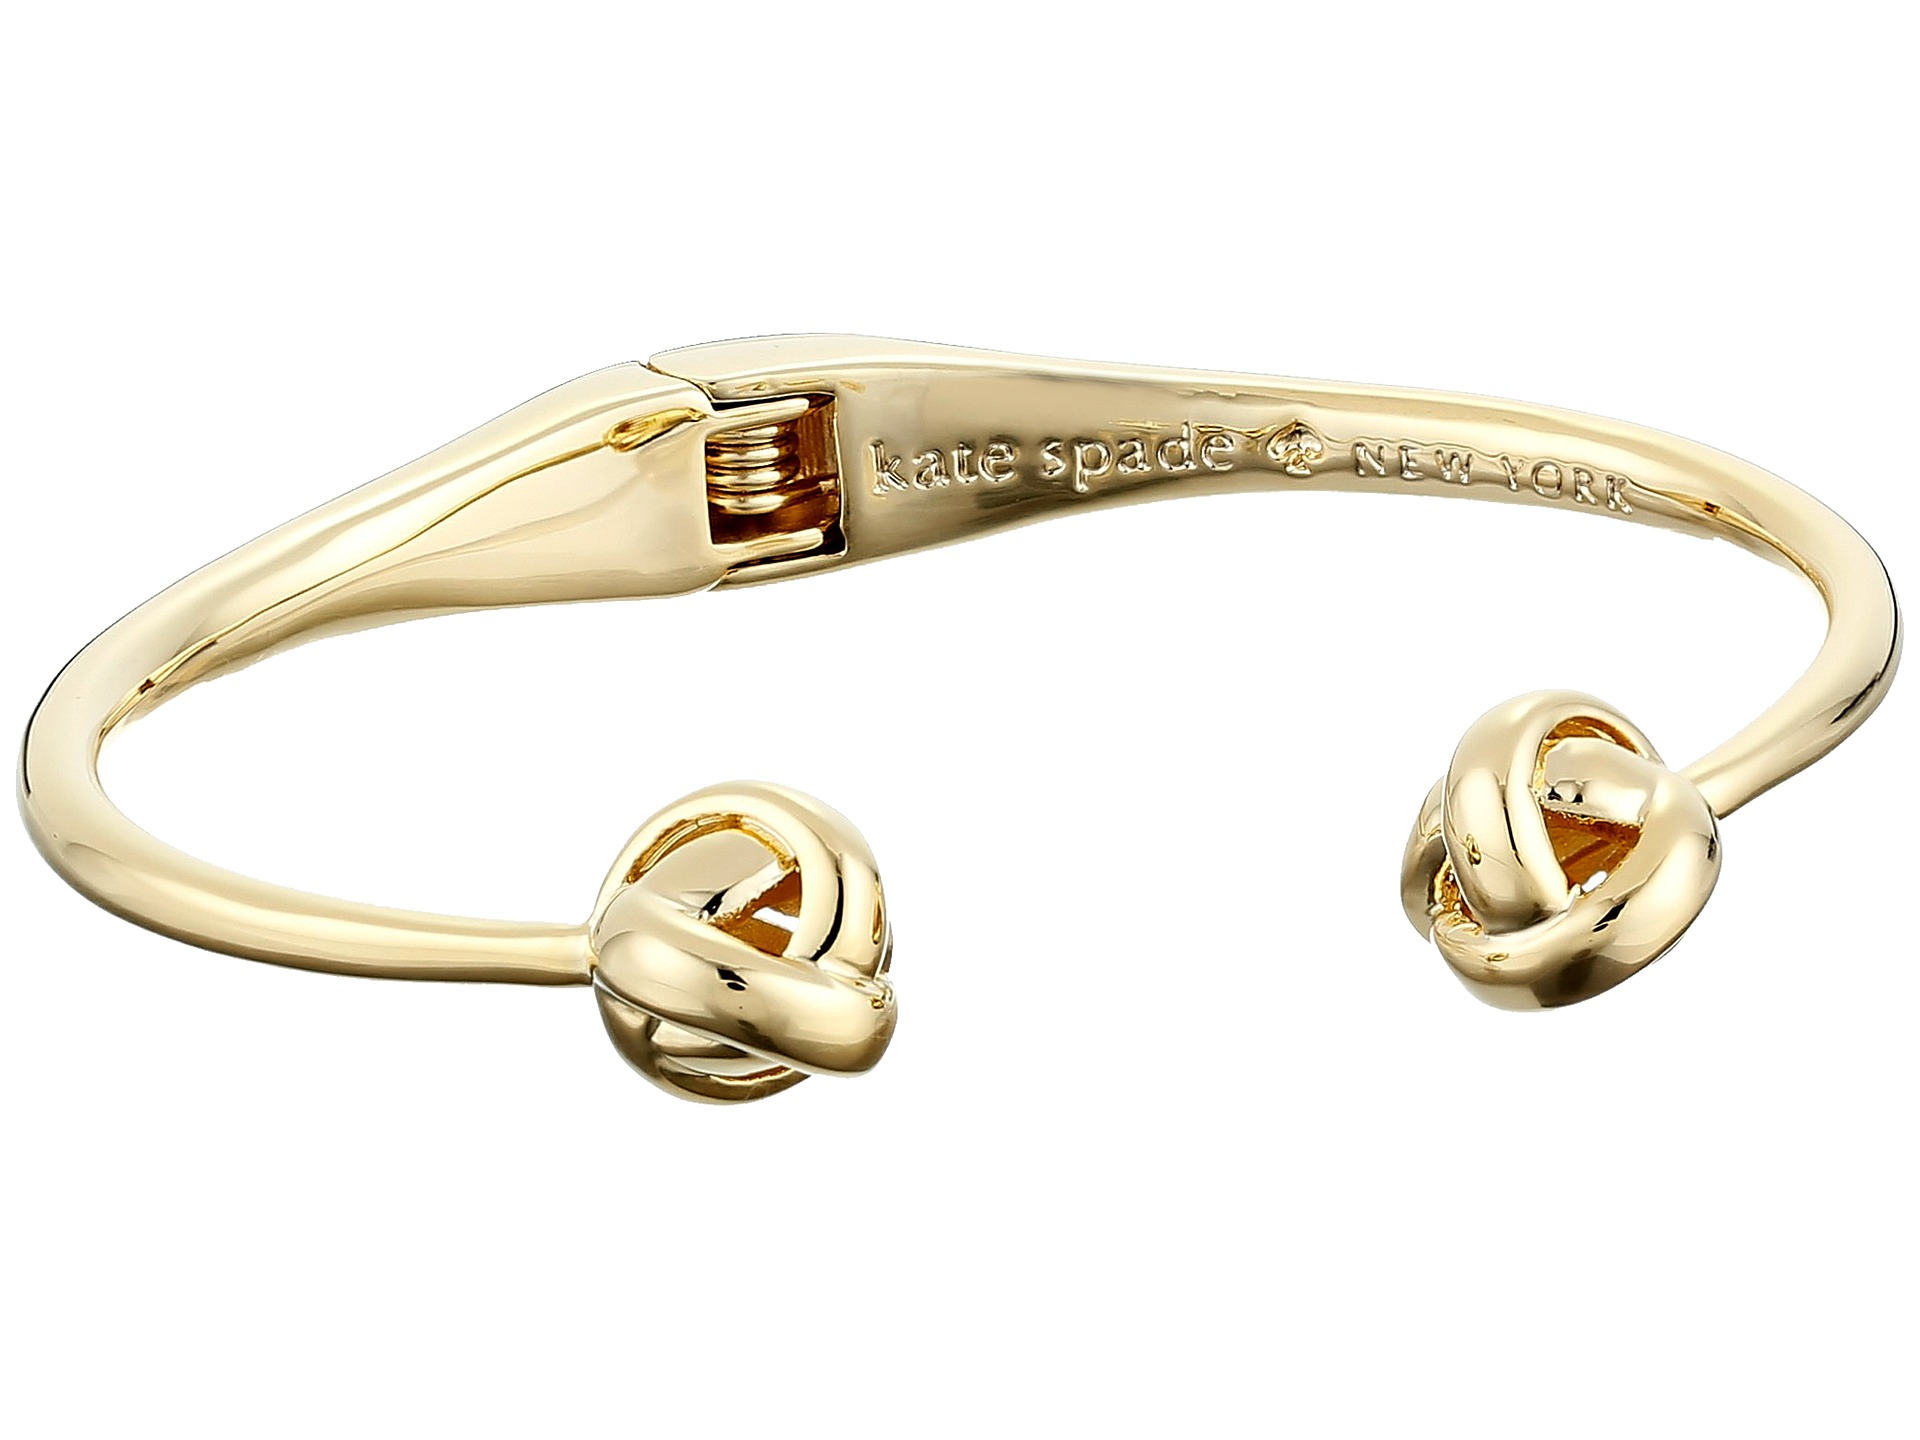 Kate Spade New York Dainty Sparklers Knot Cuff Bracelet At Luxuryppos